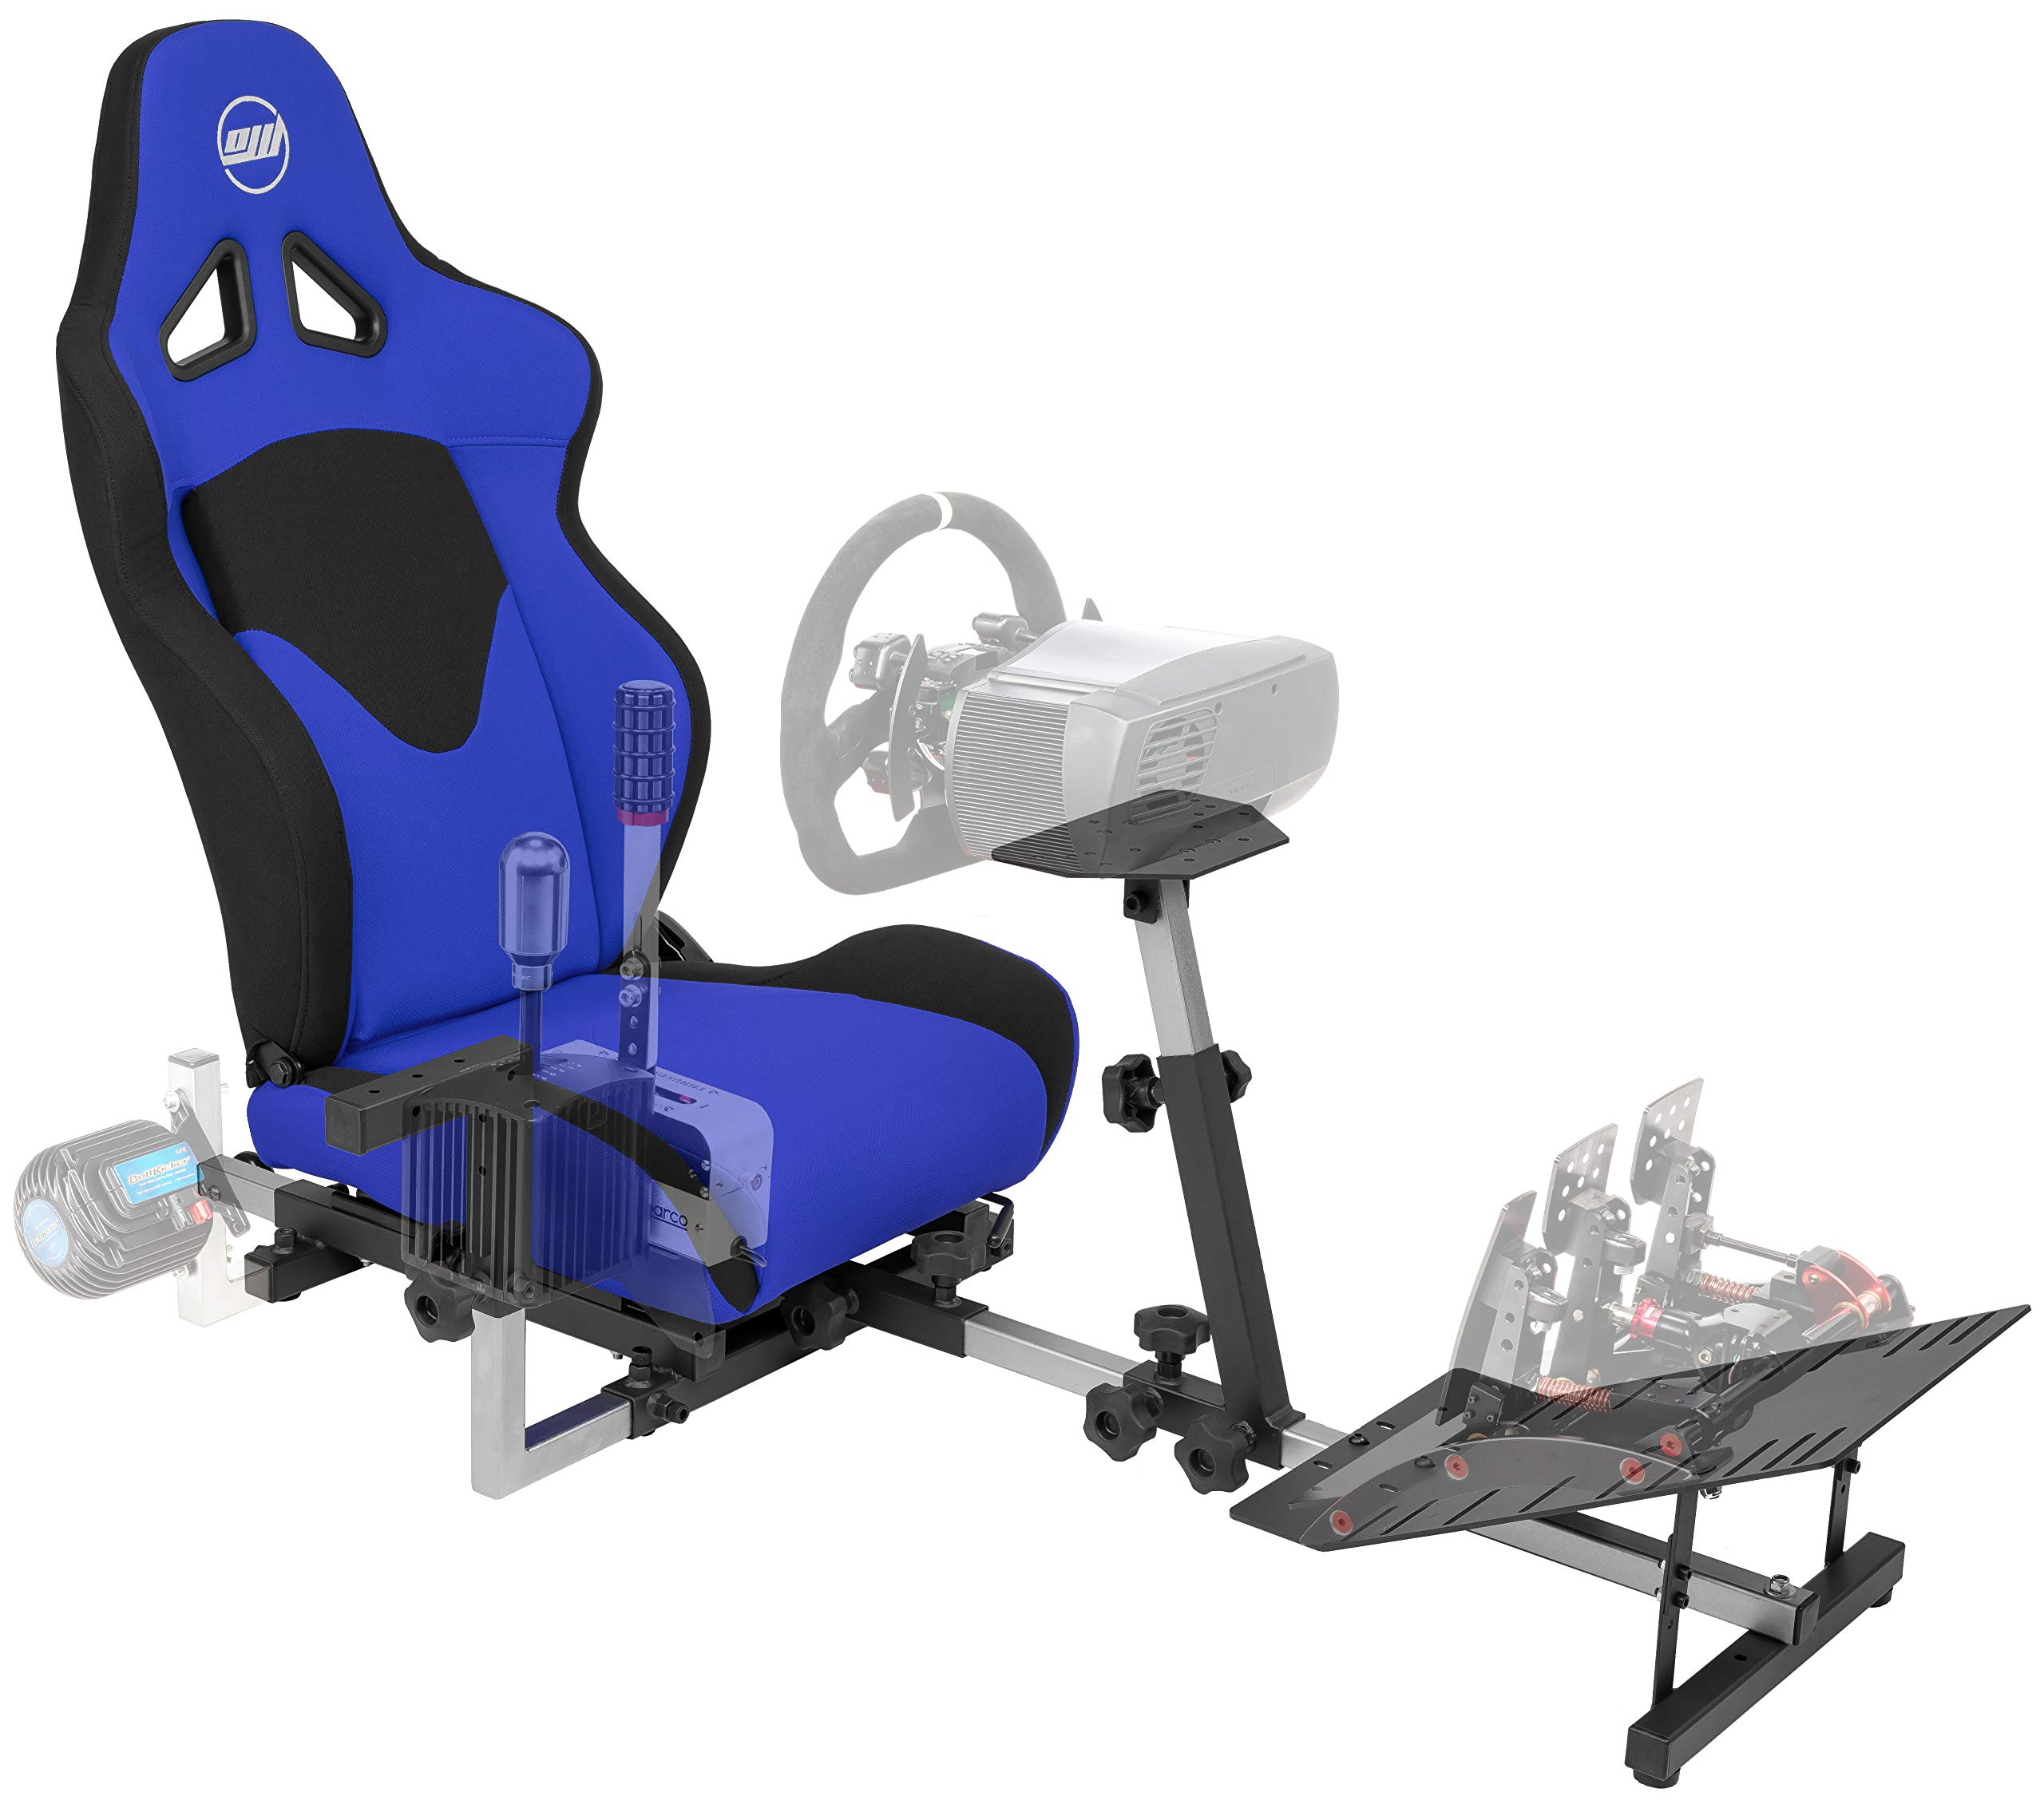 OpenWheeler GEN3 Racing Wheel Stand Cockpit Blue on Black   Fits All Logitech G923   G29   G920   Thrustmaster   Fanatec Wheels   Compatible with Xbox One, PS4, PC Platforms